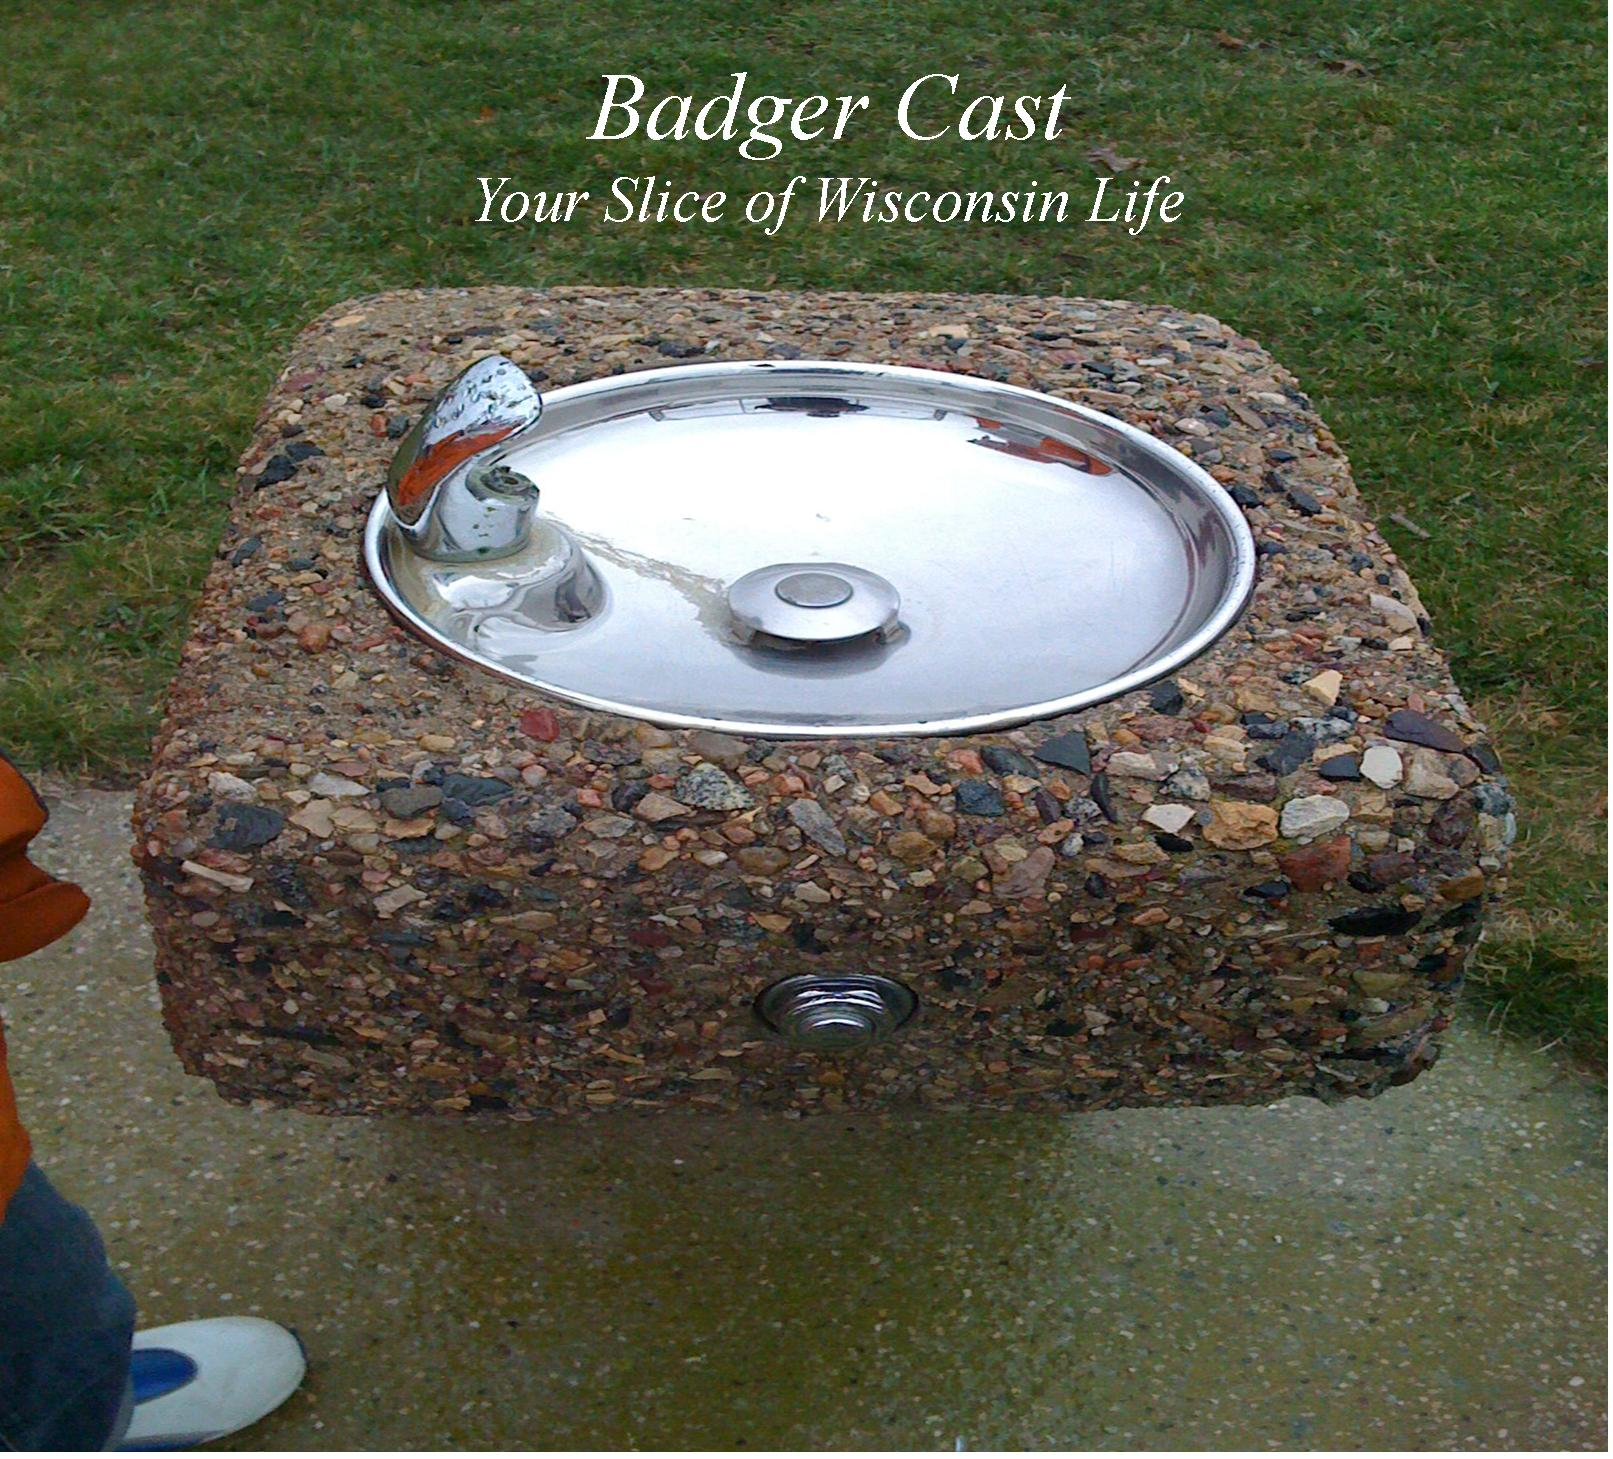 Badger Cast - Picture of a bubbler or drinking fountain 